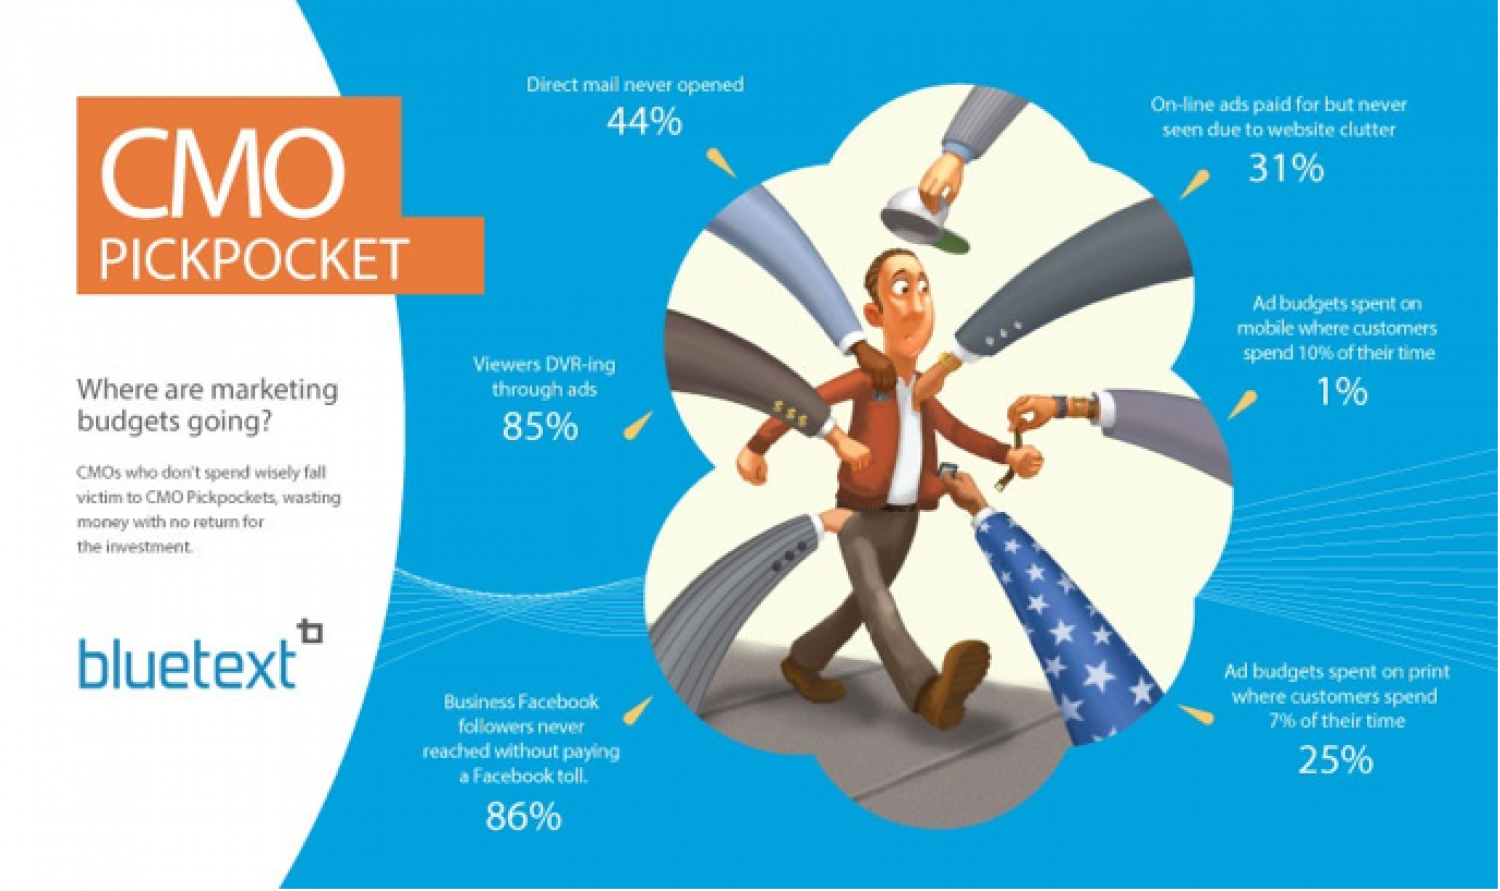 Bluetext Labs - CMO Pickpocket Infographic